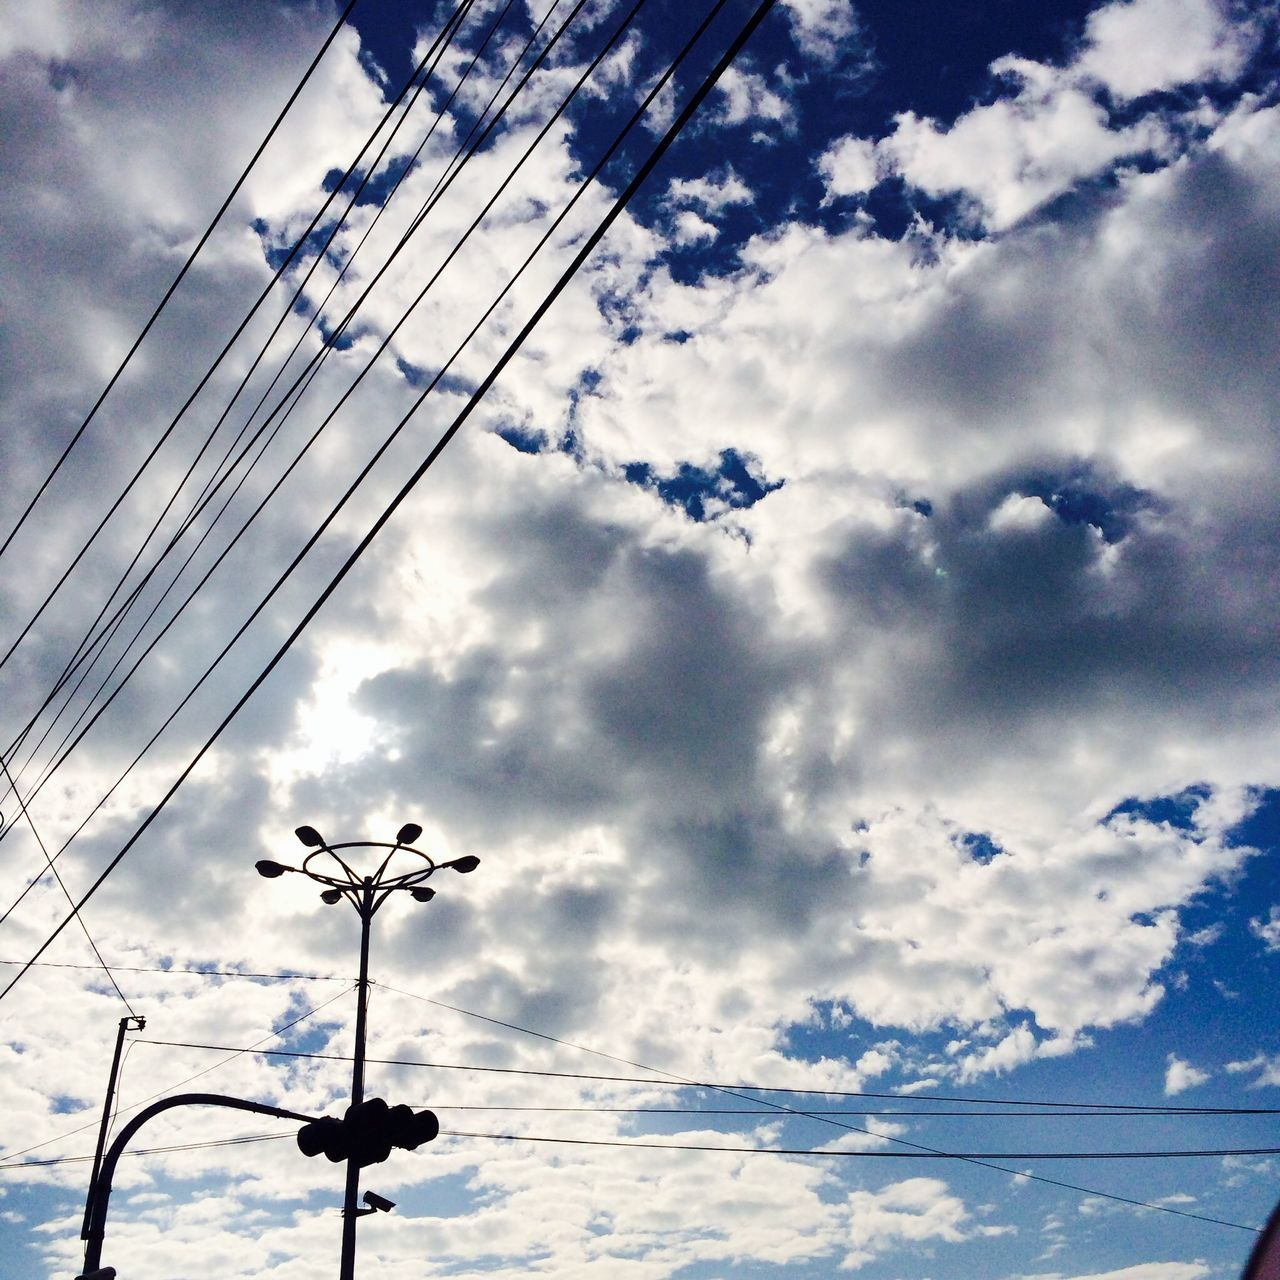 cloud - sky, sky, low angle view, cable, power line, electricity, day, no people, electricity pylon, outdoors, silhouette, power supply, nature